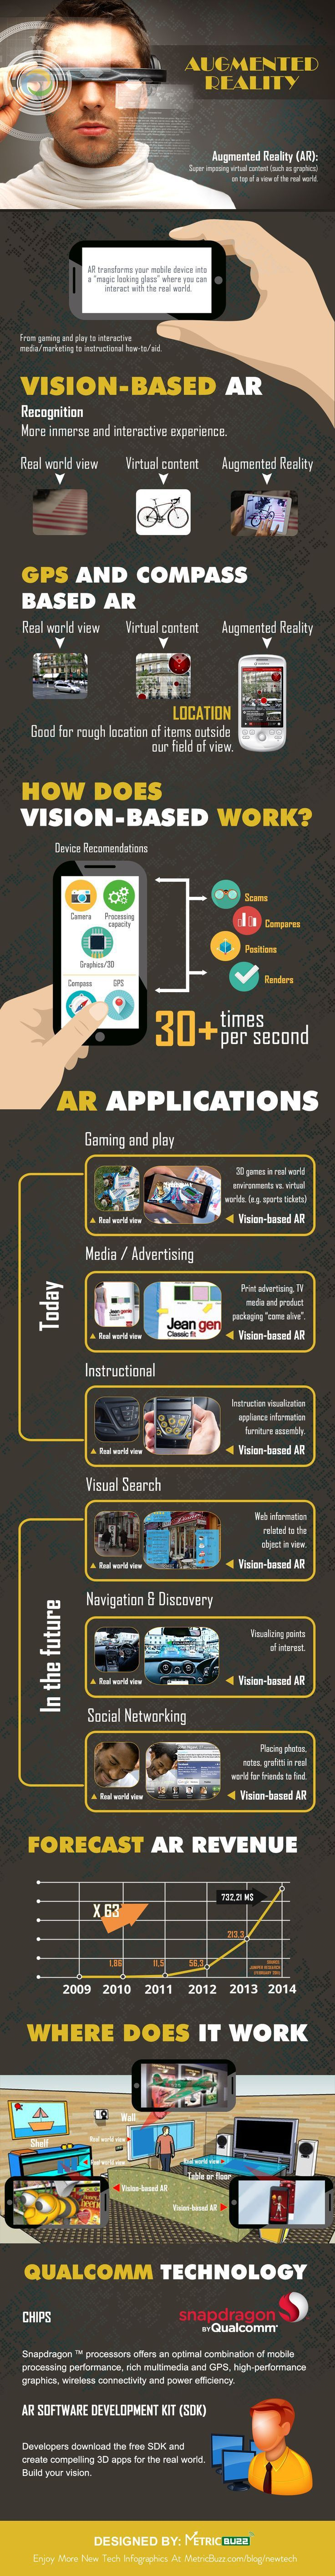 #VR #VRGames #Drone #Gaming Augmented Reality -  How Does It Work? - metricbuzz.com/...... augmented, game design, google cardboard, metricbuzzcom, reality, virtual reality, vr 360, vr games, vr glasses, vr gloves, vr headset, vr infographic, VR Pics, vr real estate, work #Augmented #Game-Design #Google-Cardboard #Metricbuzzcom #Reality #Virtual-Reality #Vr-360 #Vr-Games #Vr-Glasses #Vr-Gloves #Vr-Headset #Vr-Infographic #VR-Pics #Vr-Real-Estate #Work http://bit.ly/2yuShja